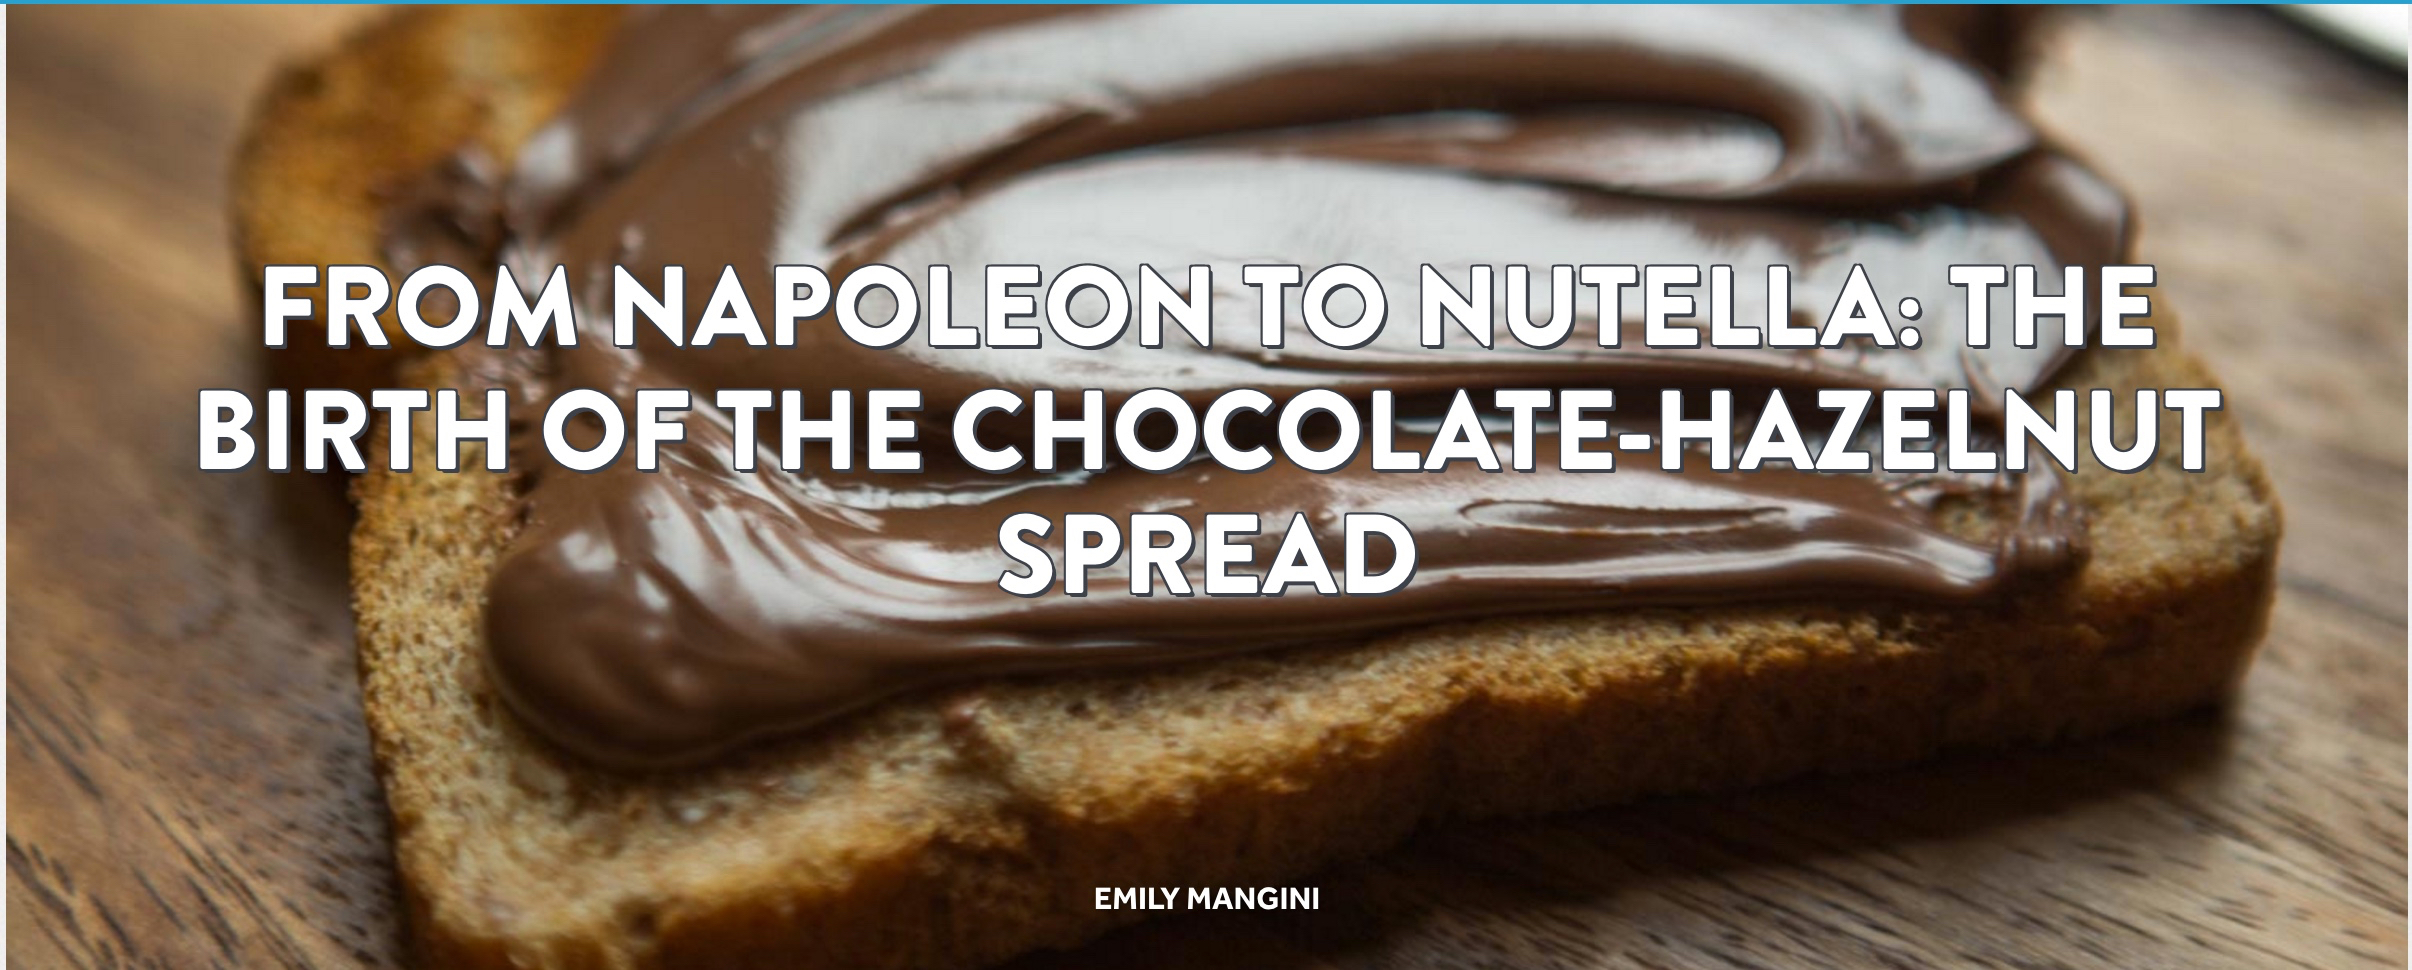 From Napoleon to Nutella: The Birth of the Chocolate-Hazelnut Spread   Topic: Food History